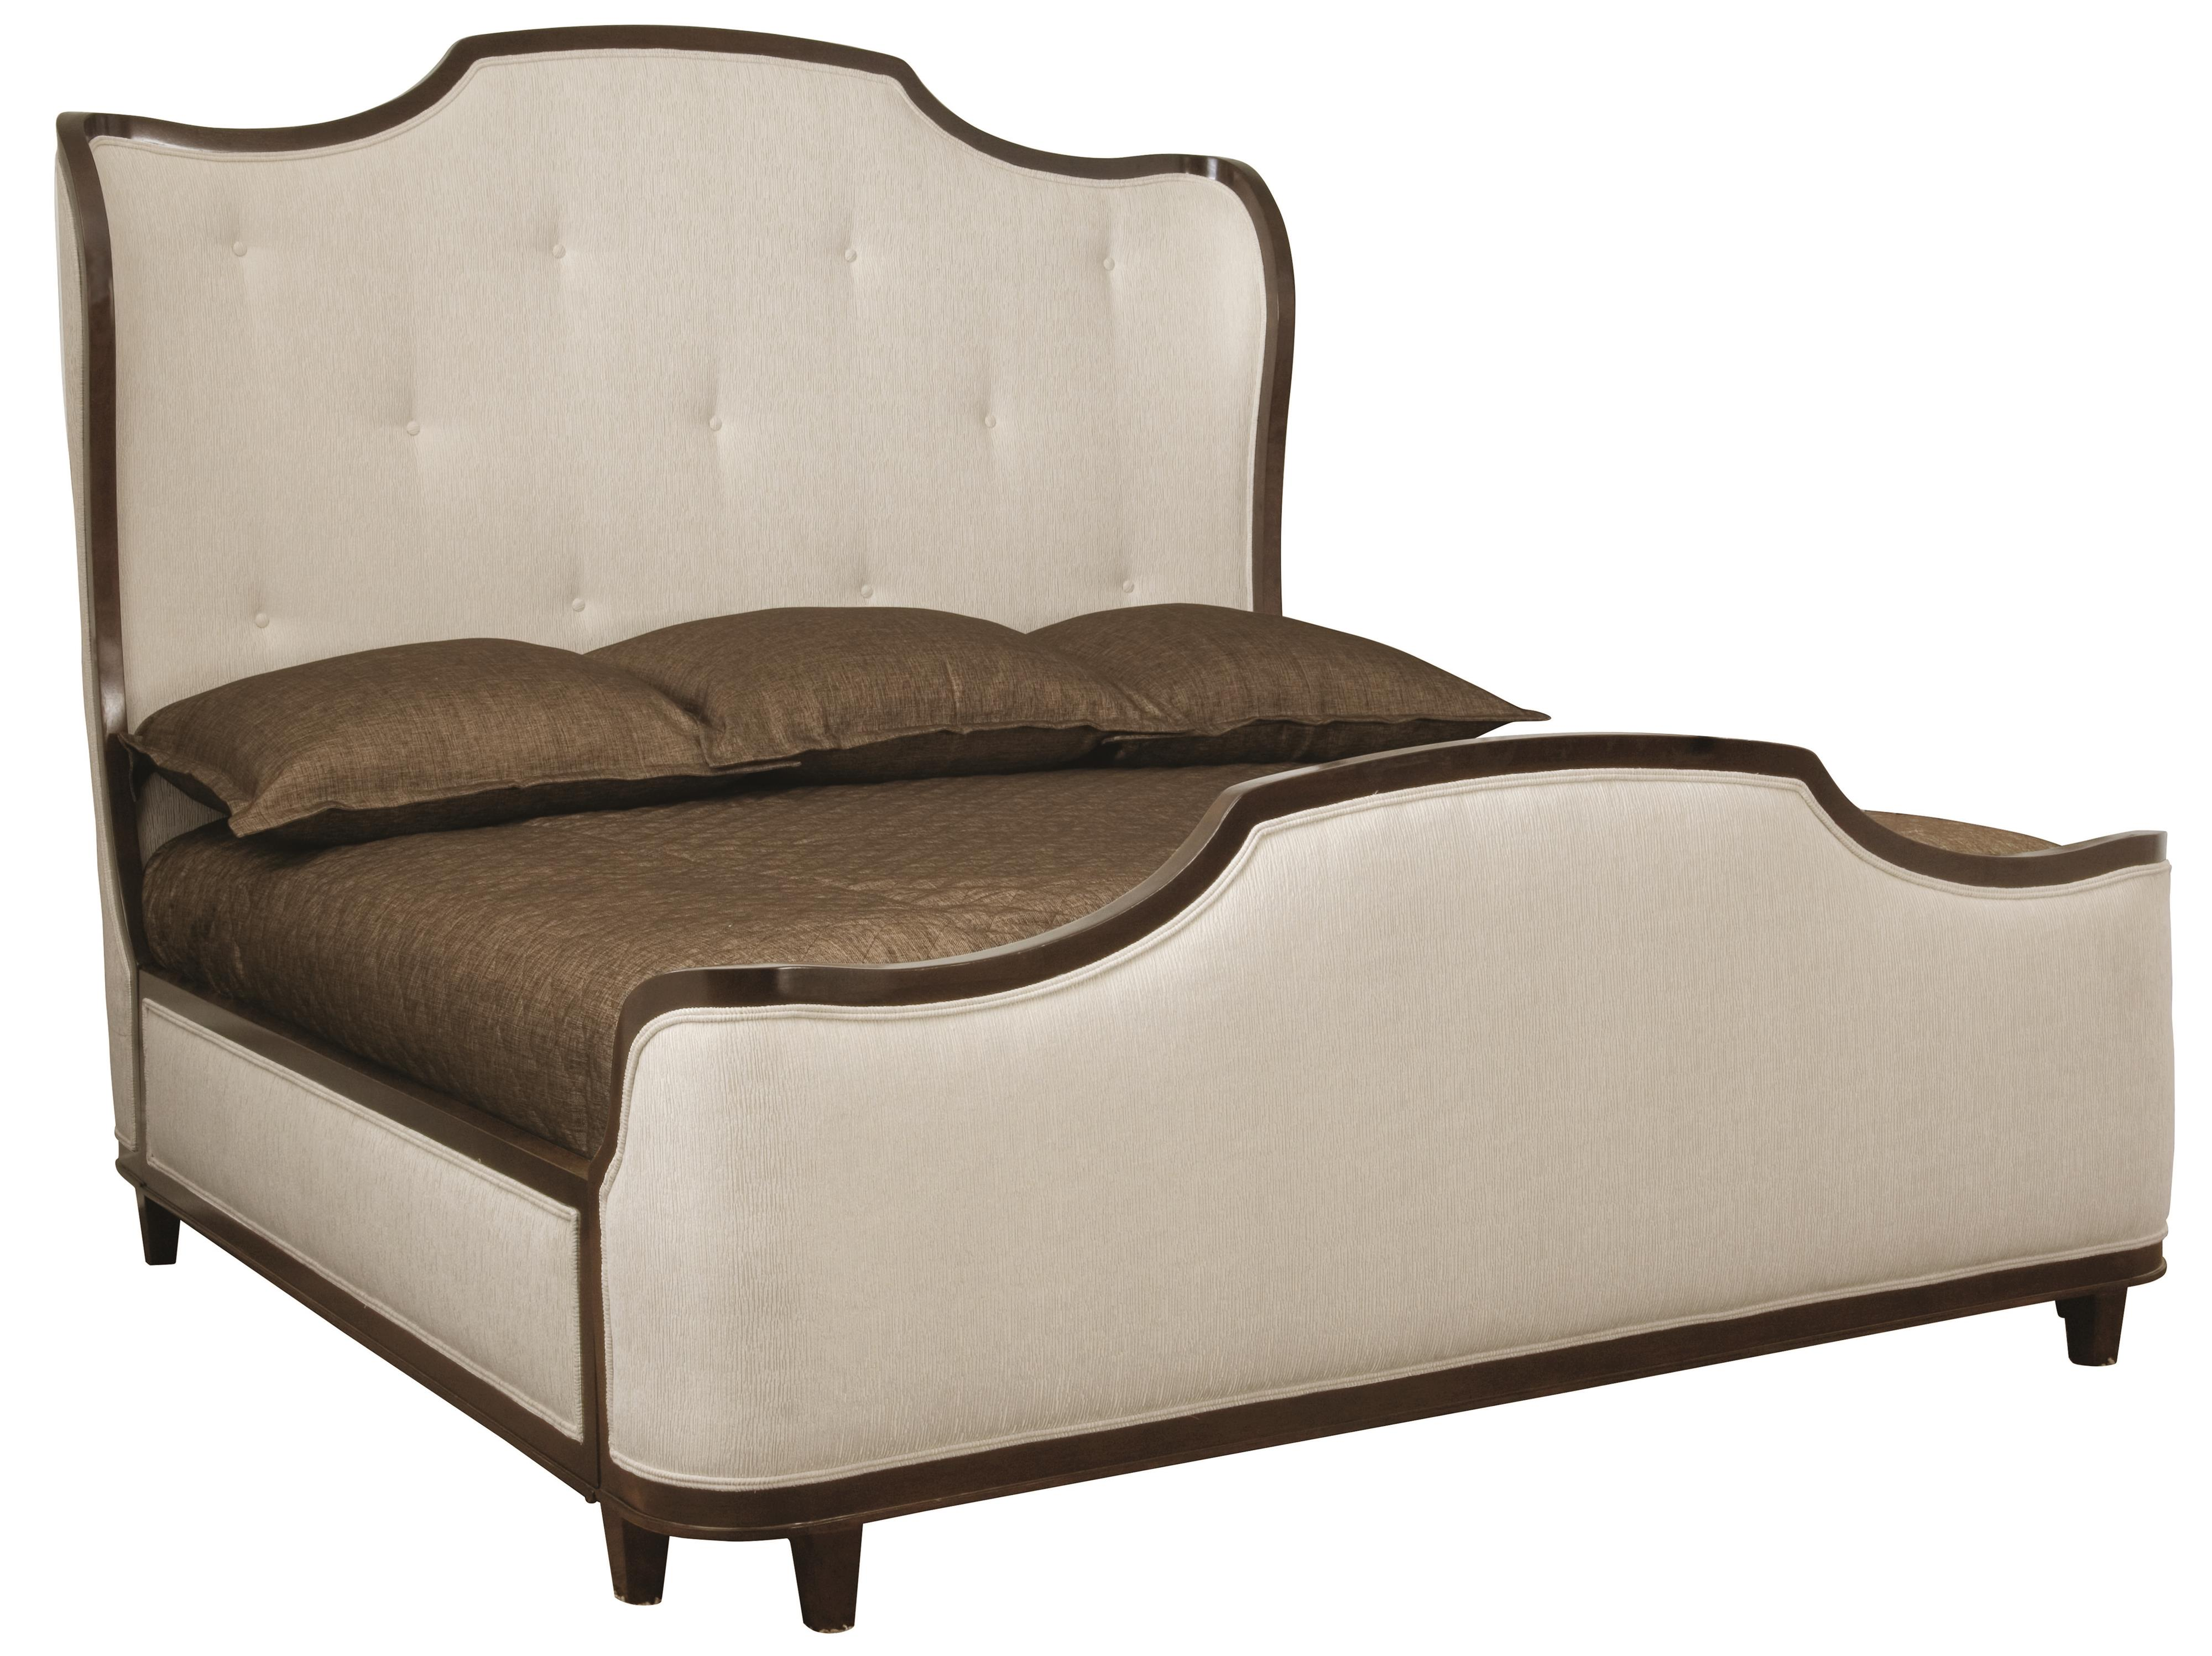 Bernhardt Miramont King Upholstered Sleigh Bed - Item Number: 360-H63-F63-R63